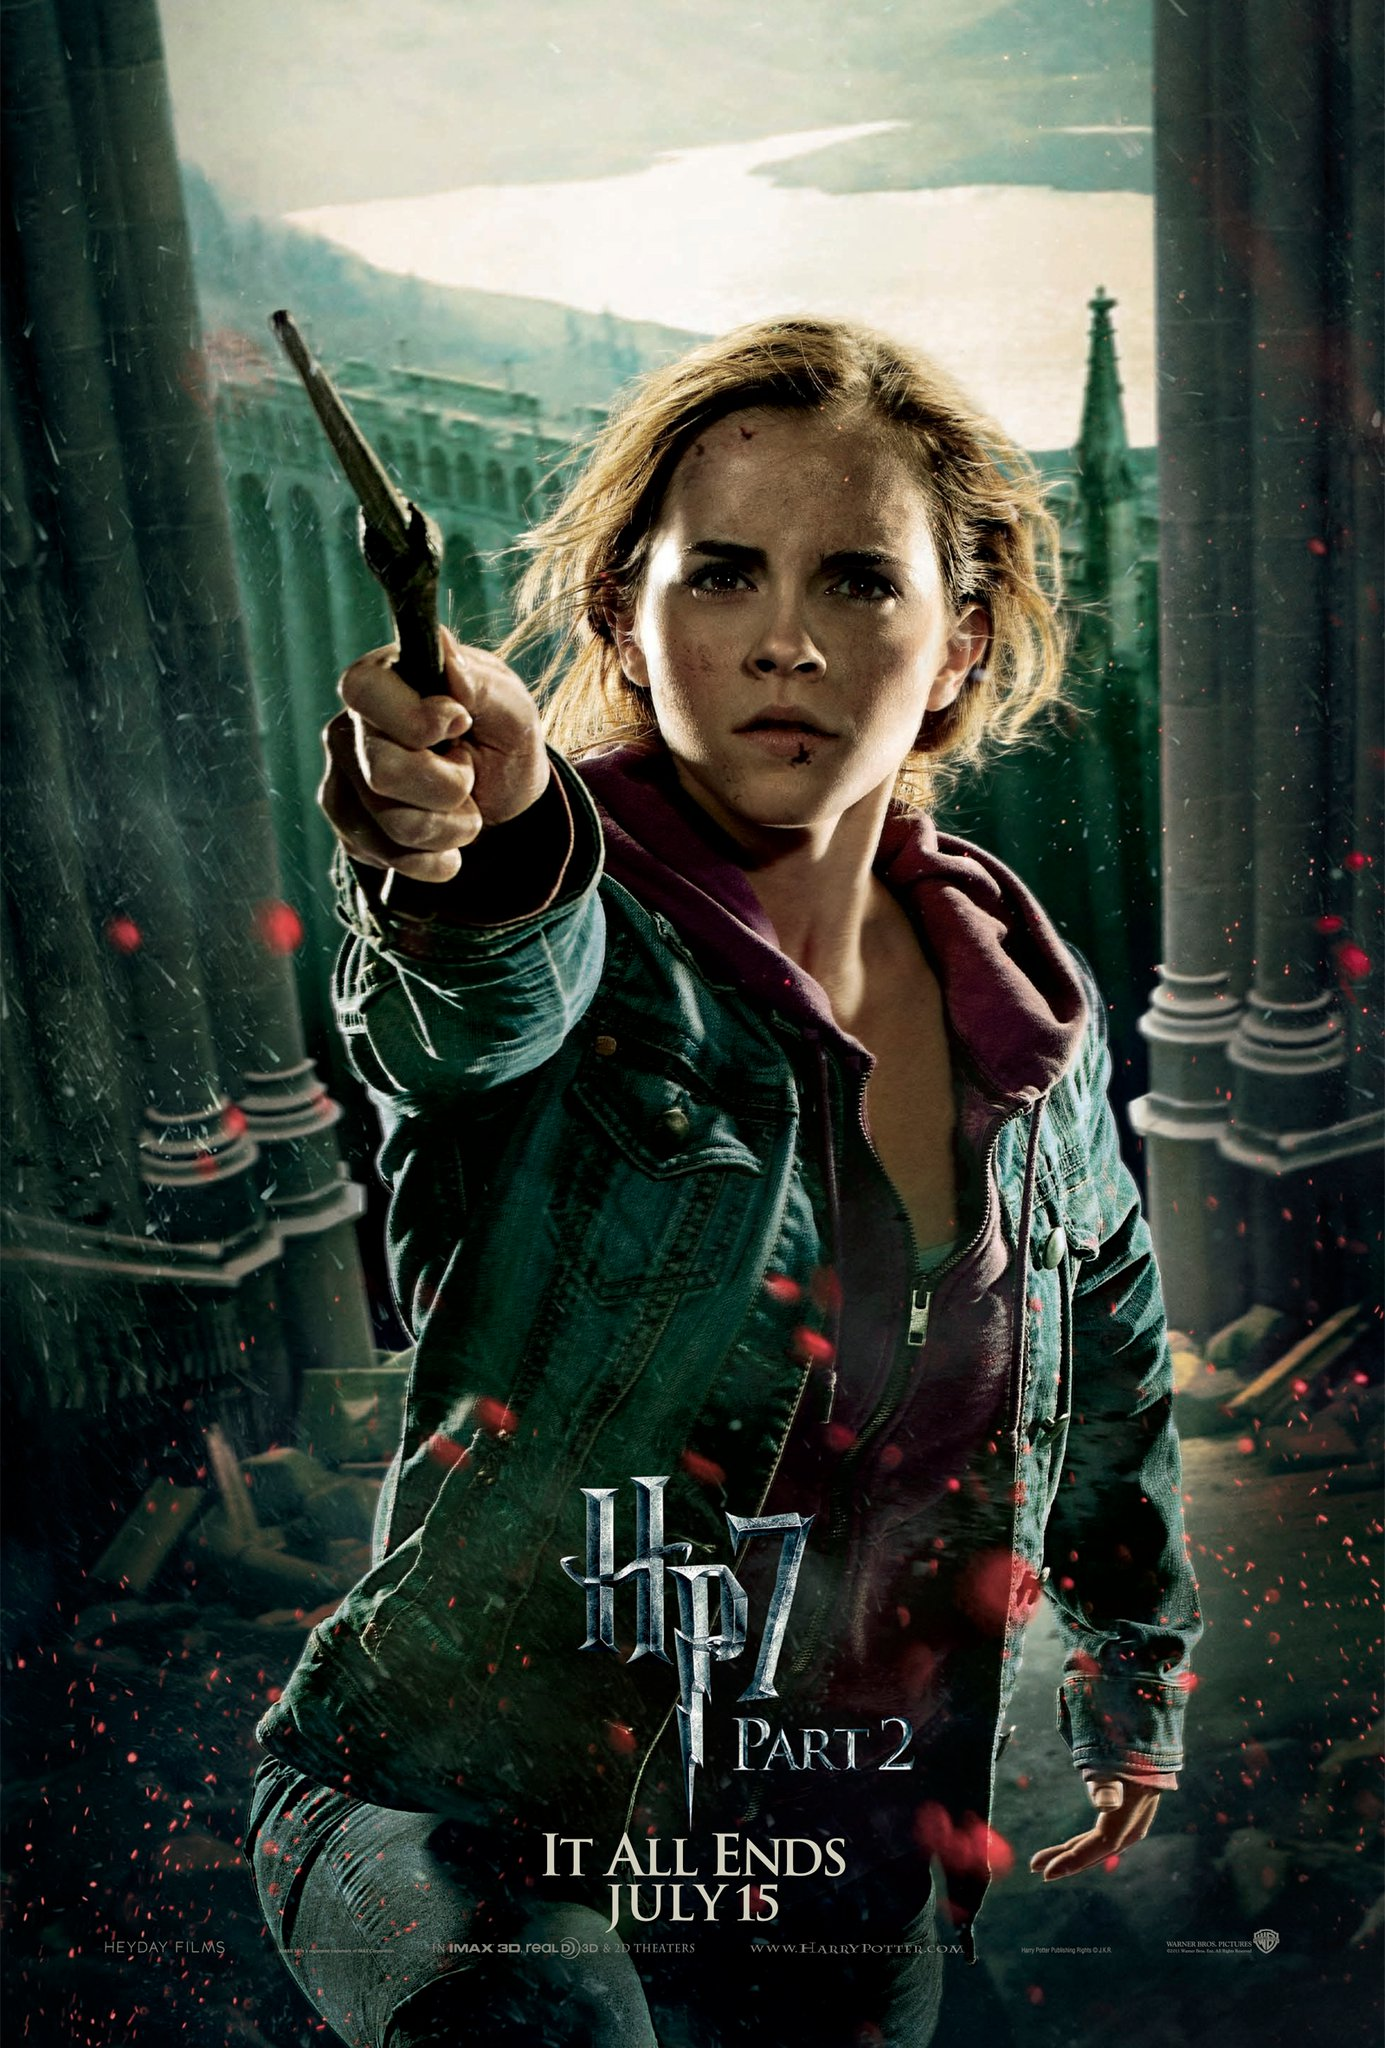 Wallpaper HP7 Part 2 poster - Hermione Harry Potter